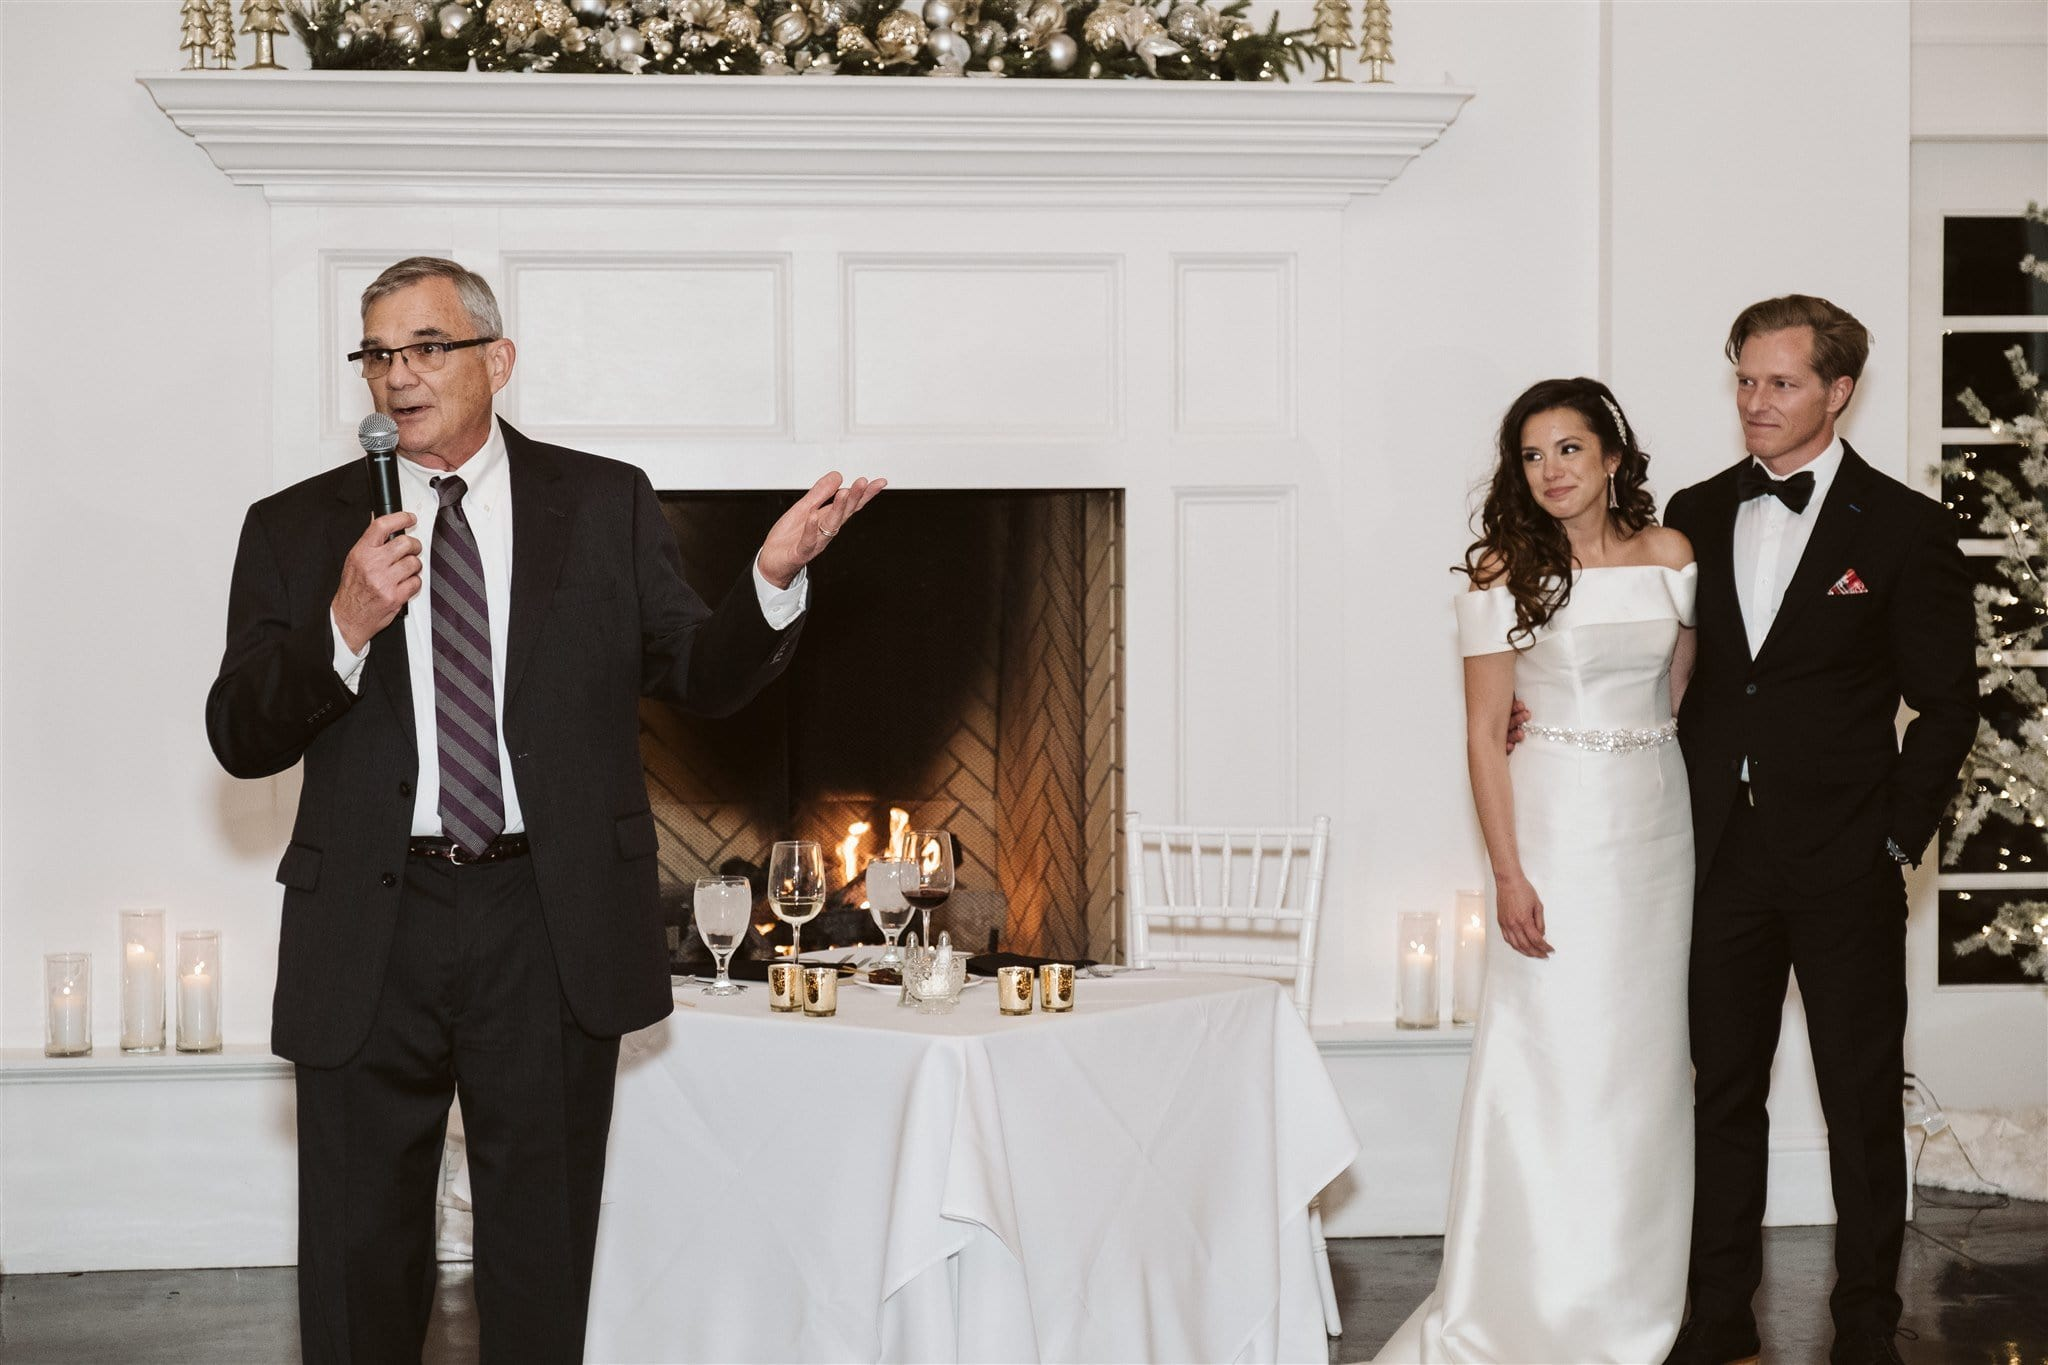 Father of the bride gives a toast